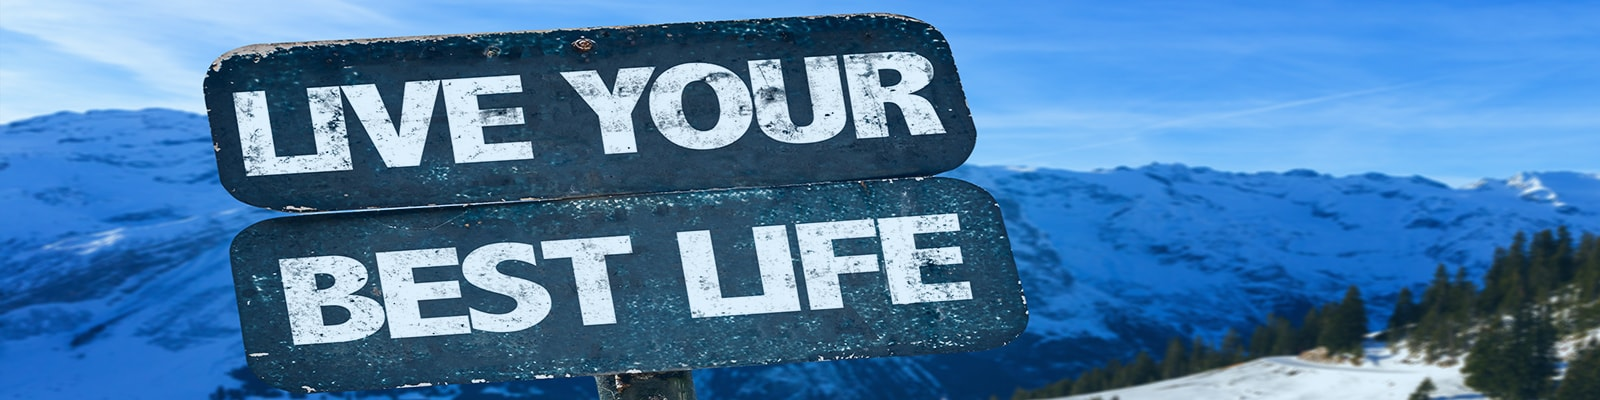 live-your-best-life-impact-people-practices-min